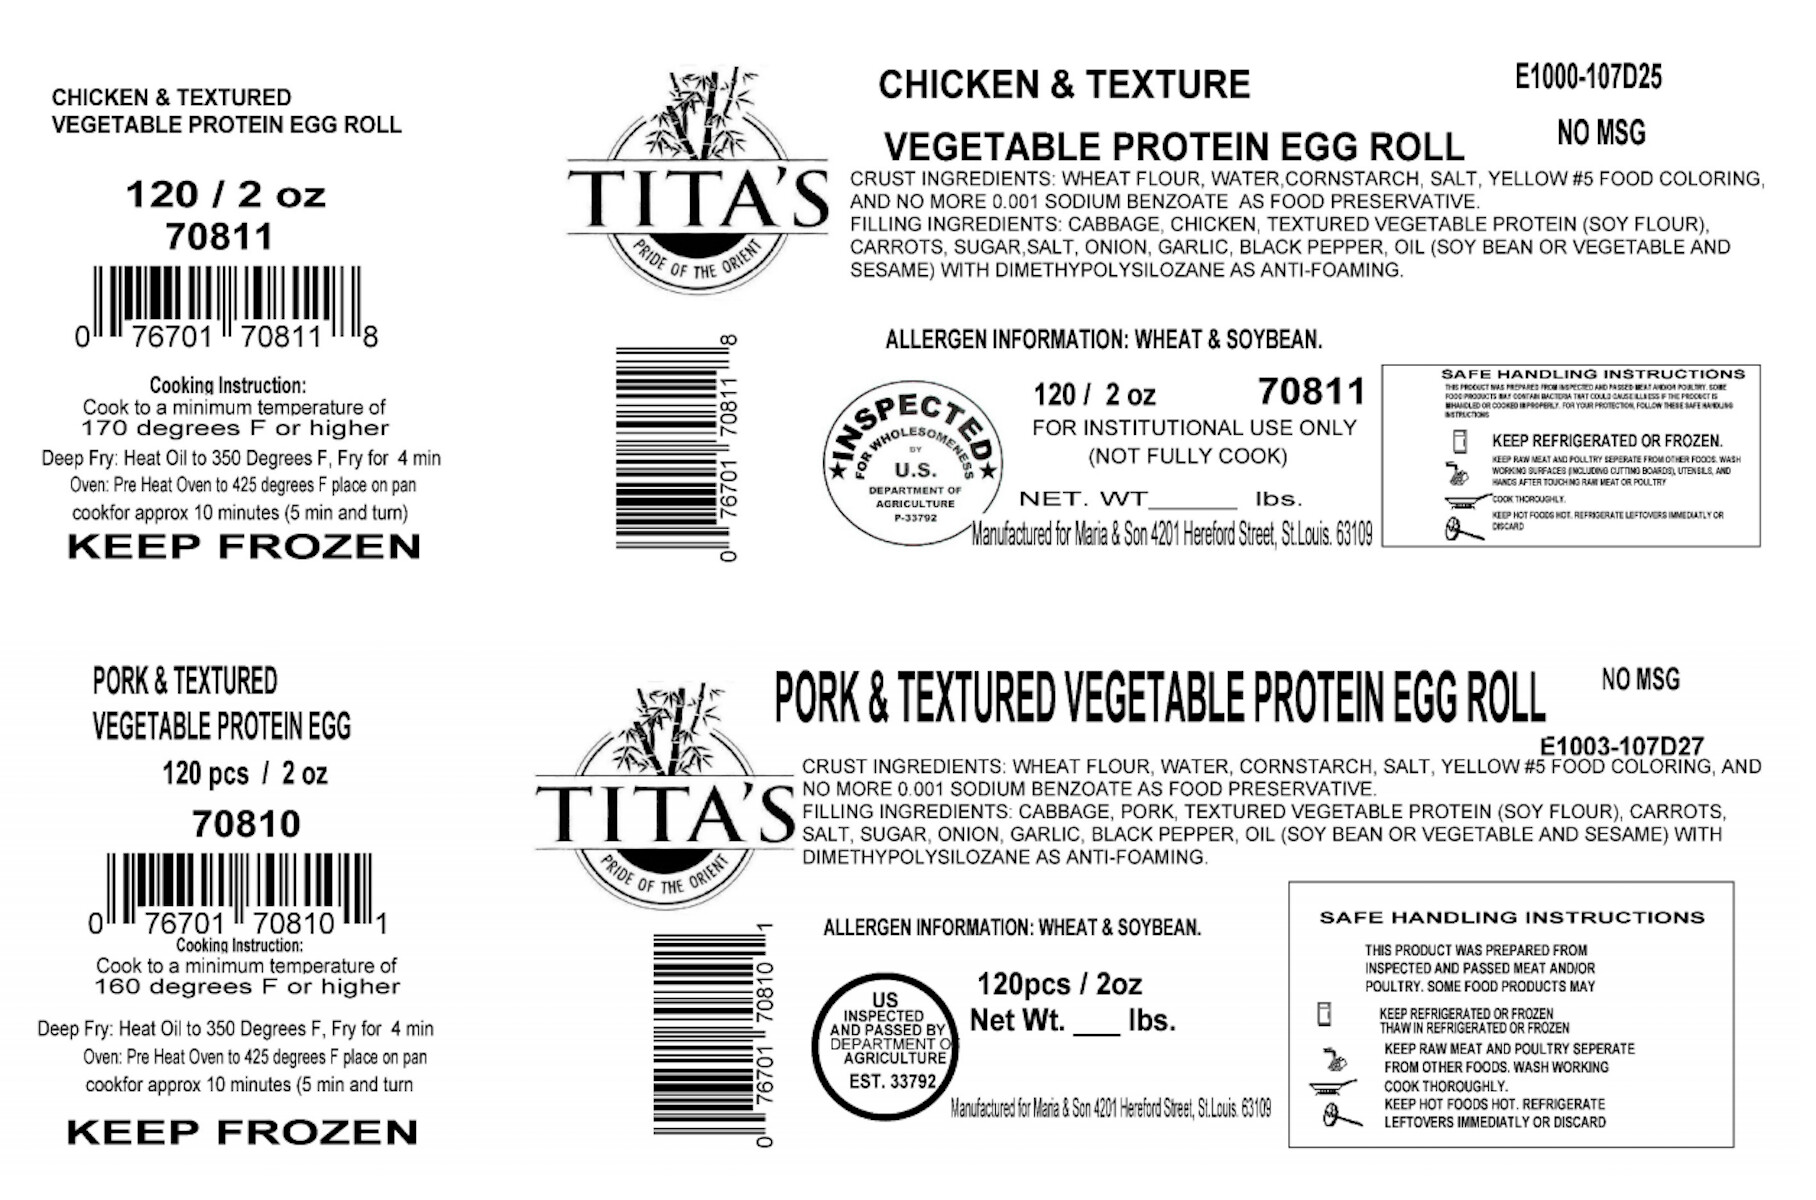 meat and poultry egg rolls recalled